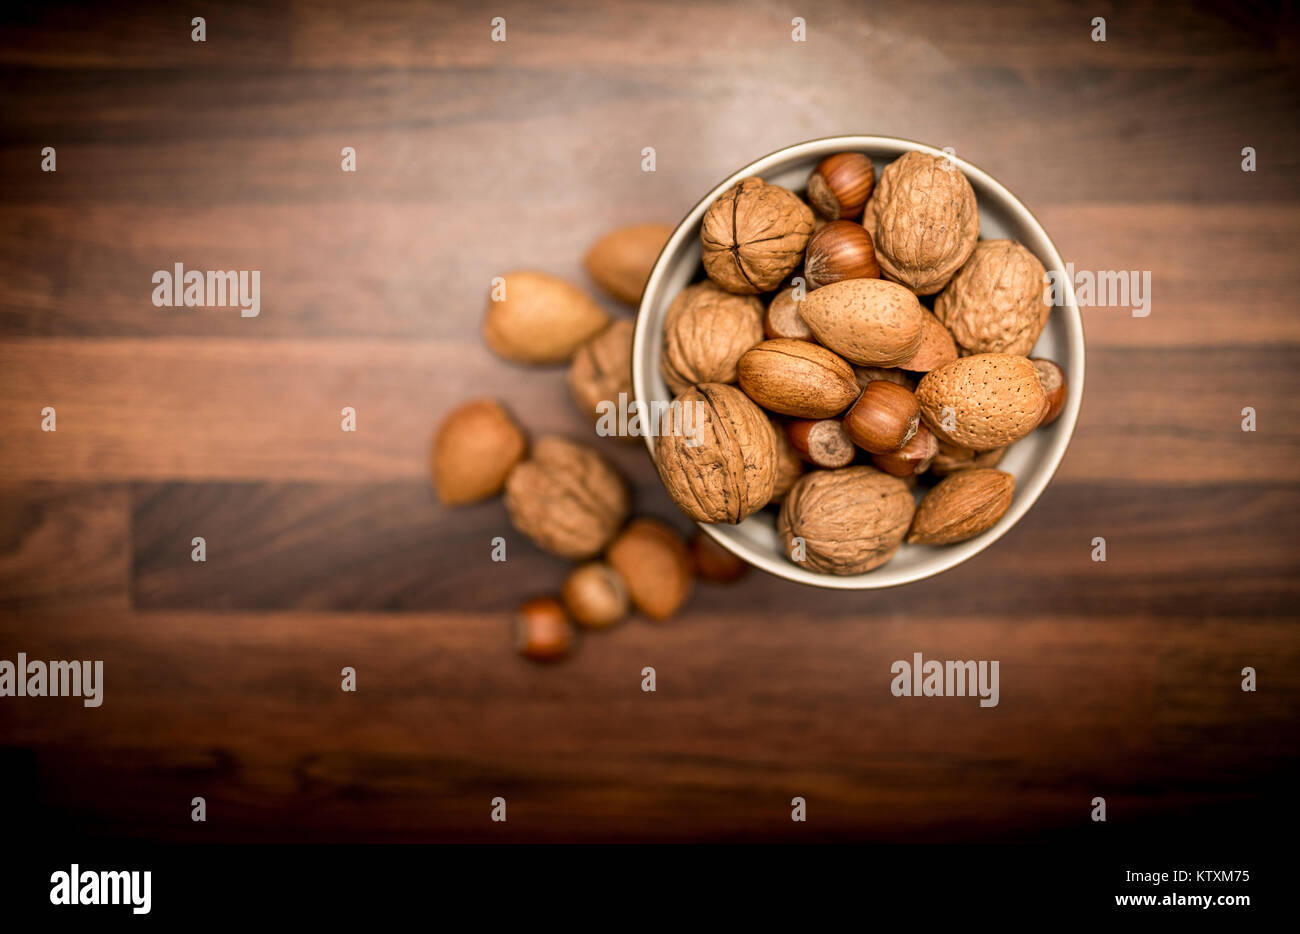 A bowl of healthy mixed whole nuts in their shells including walnuts, hazelnuts, almonds and pecans shot from above - Stock Image